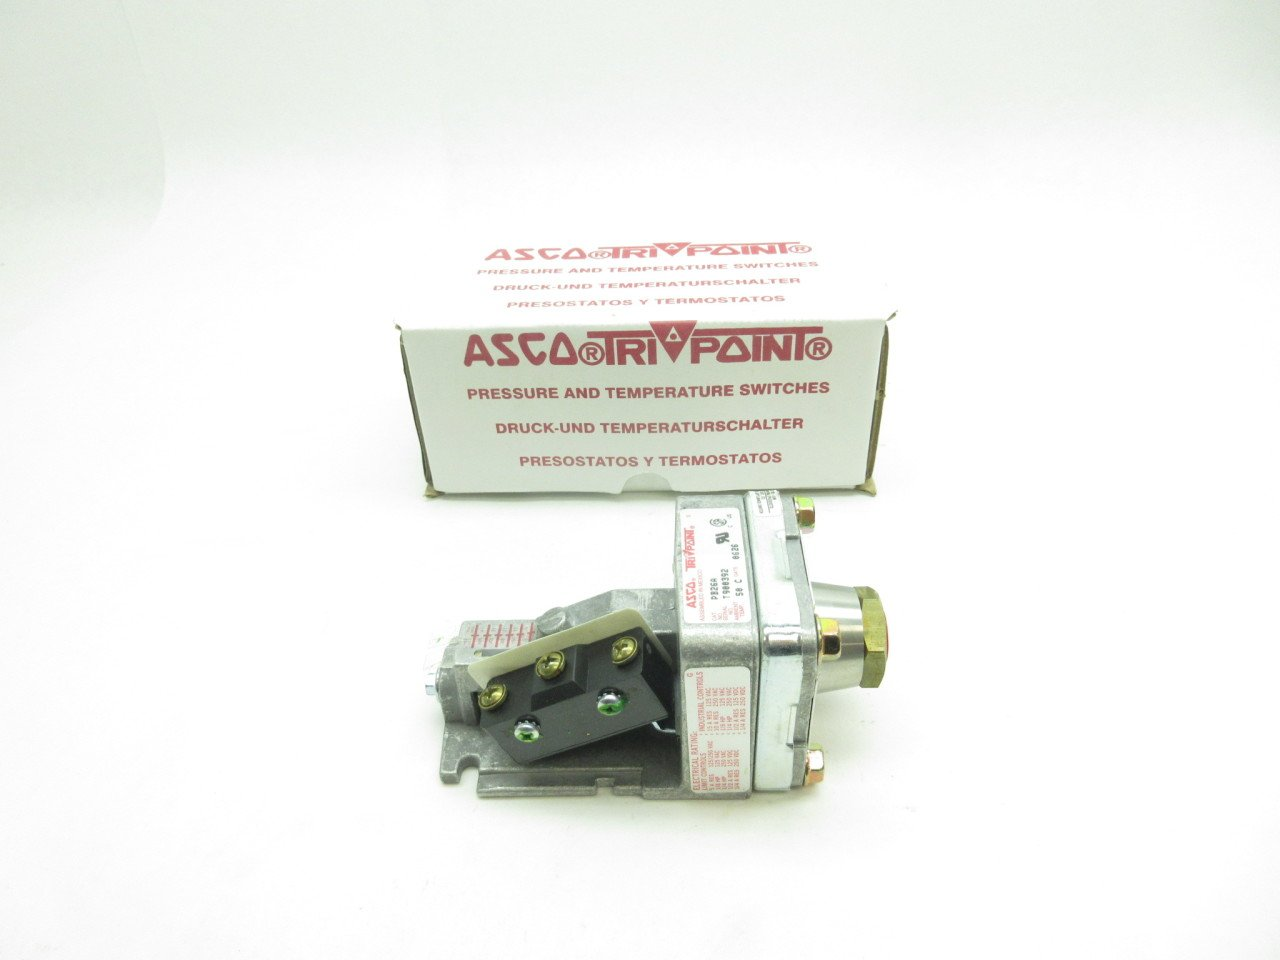 Amazon.com: ASCO PB26A/RL20A21 TRIPOINT Pressure Switch D603188: Industrial & Scientific